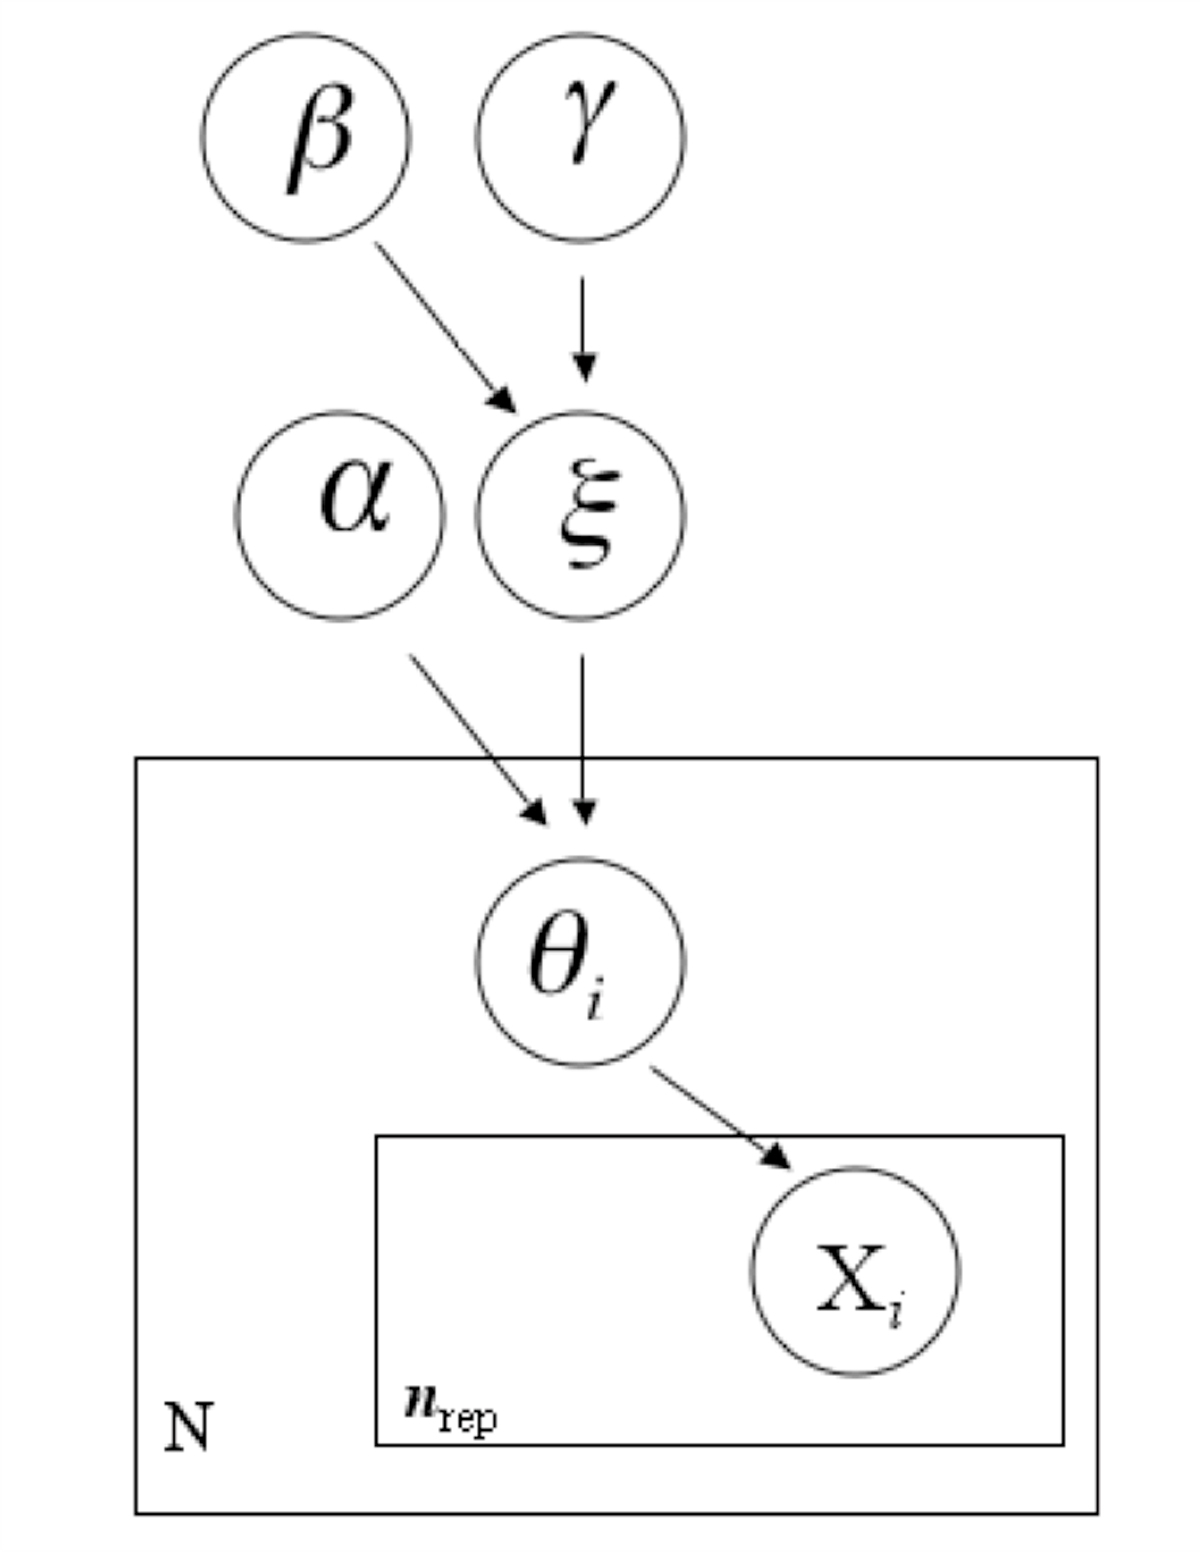 https://static-content.springer.com/image/art%3A10.1186%2F1471-2105-13-S14-S6/MediaObjects/12859_2012_Article_5333_Fig2_HTML.jpg